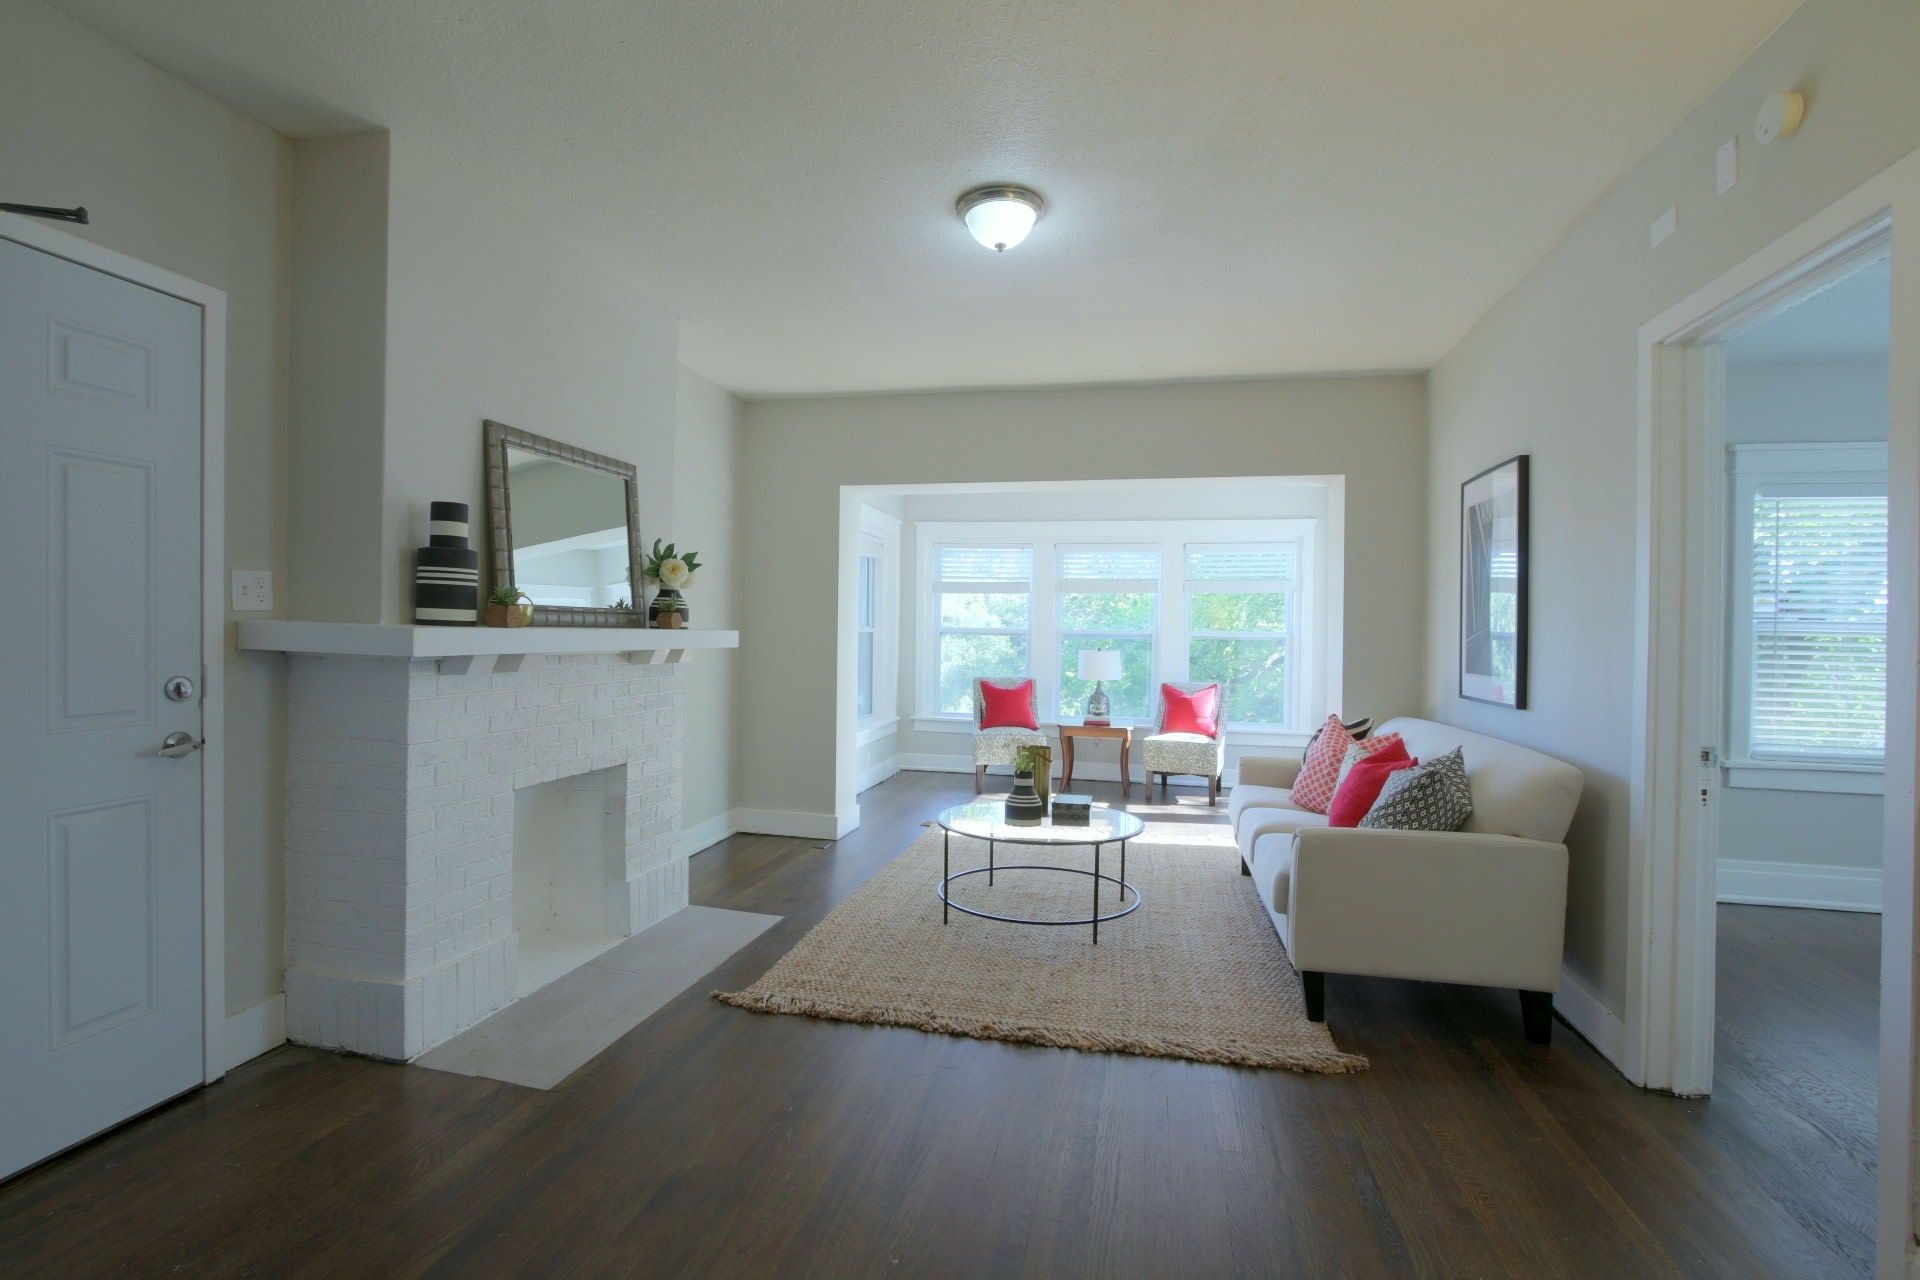 20 Best Apartments In Grandview, MO (with pictures)! - p. 6